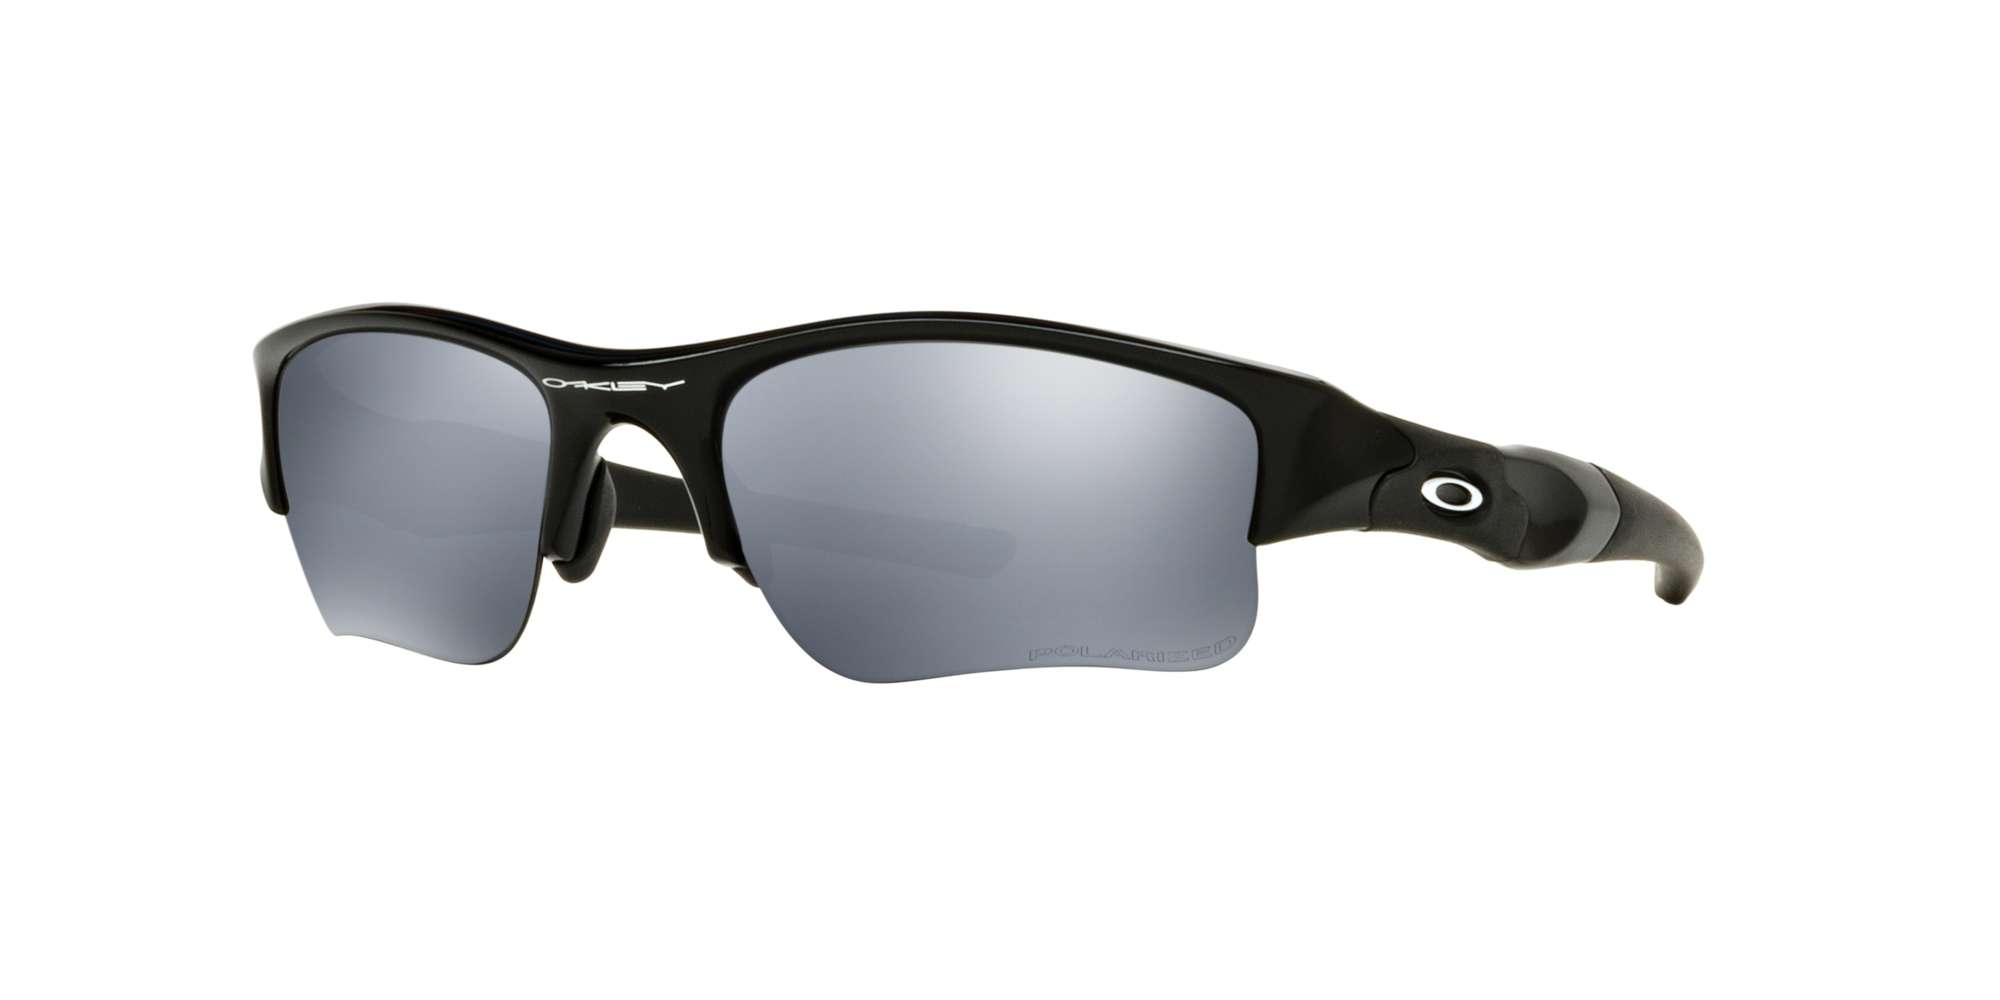 JET BLACK / BLACK IRIDIUM POLARIZED lenses